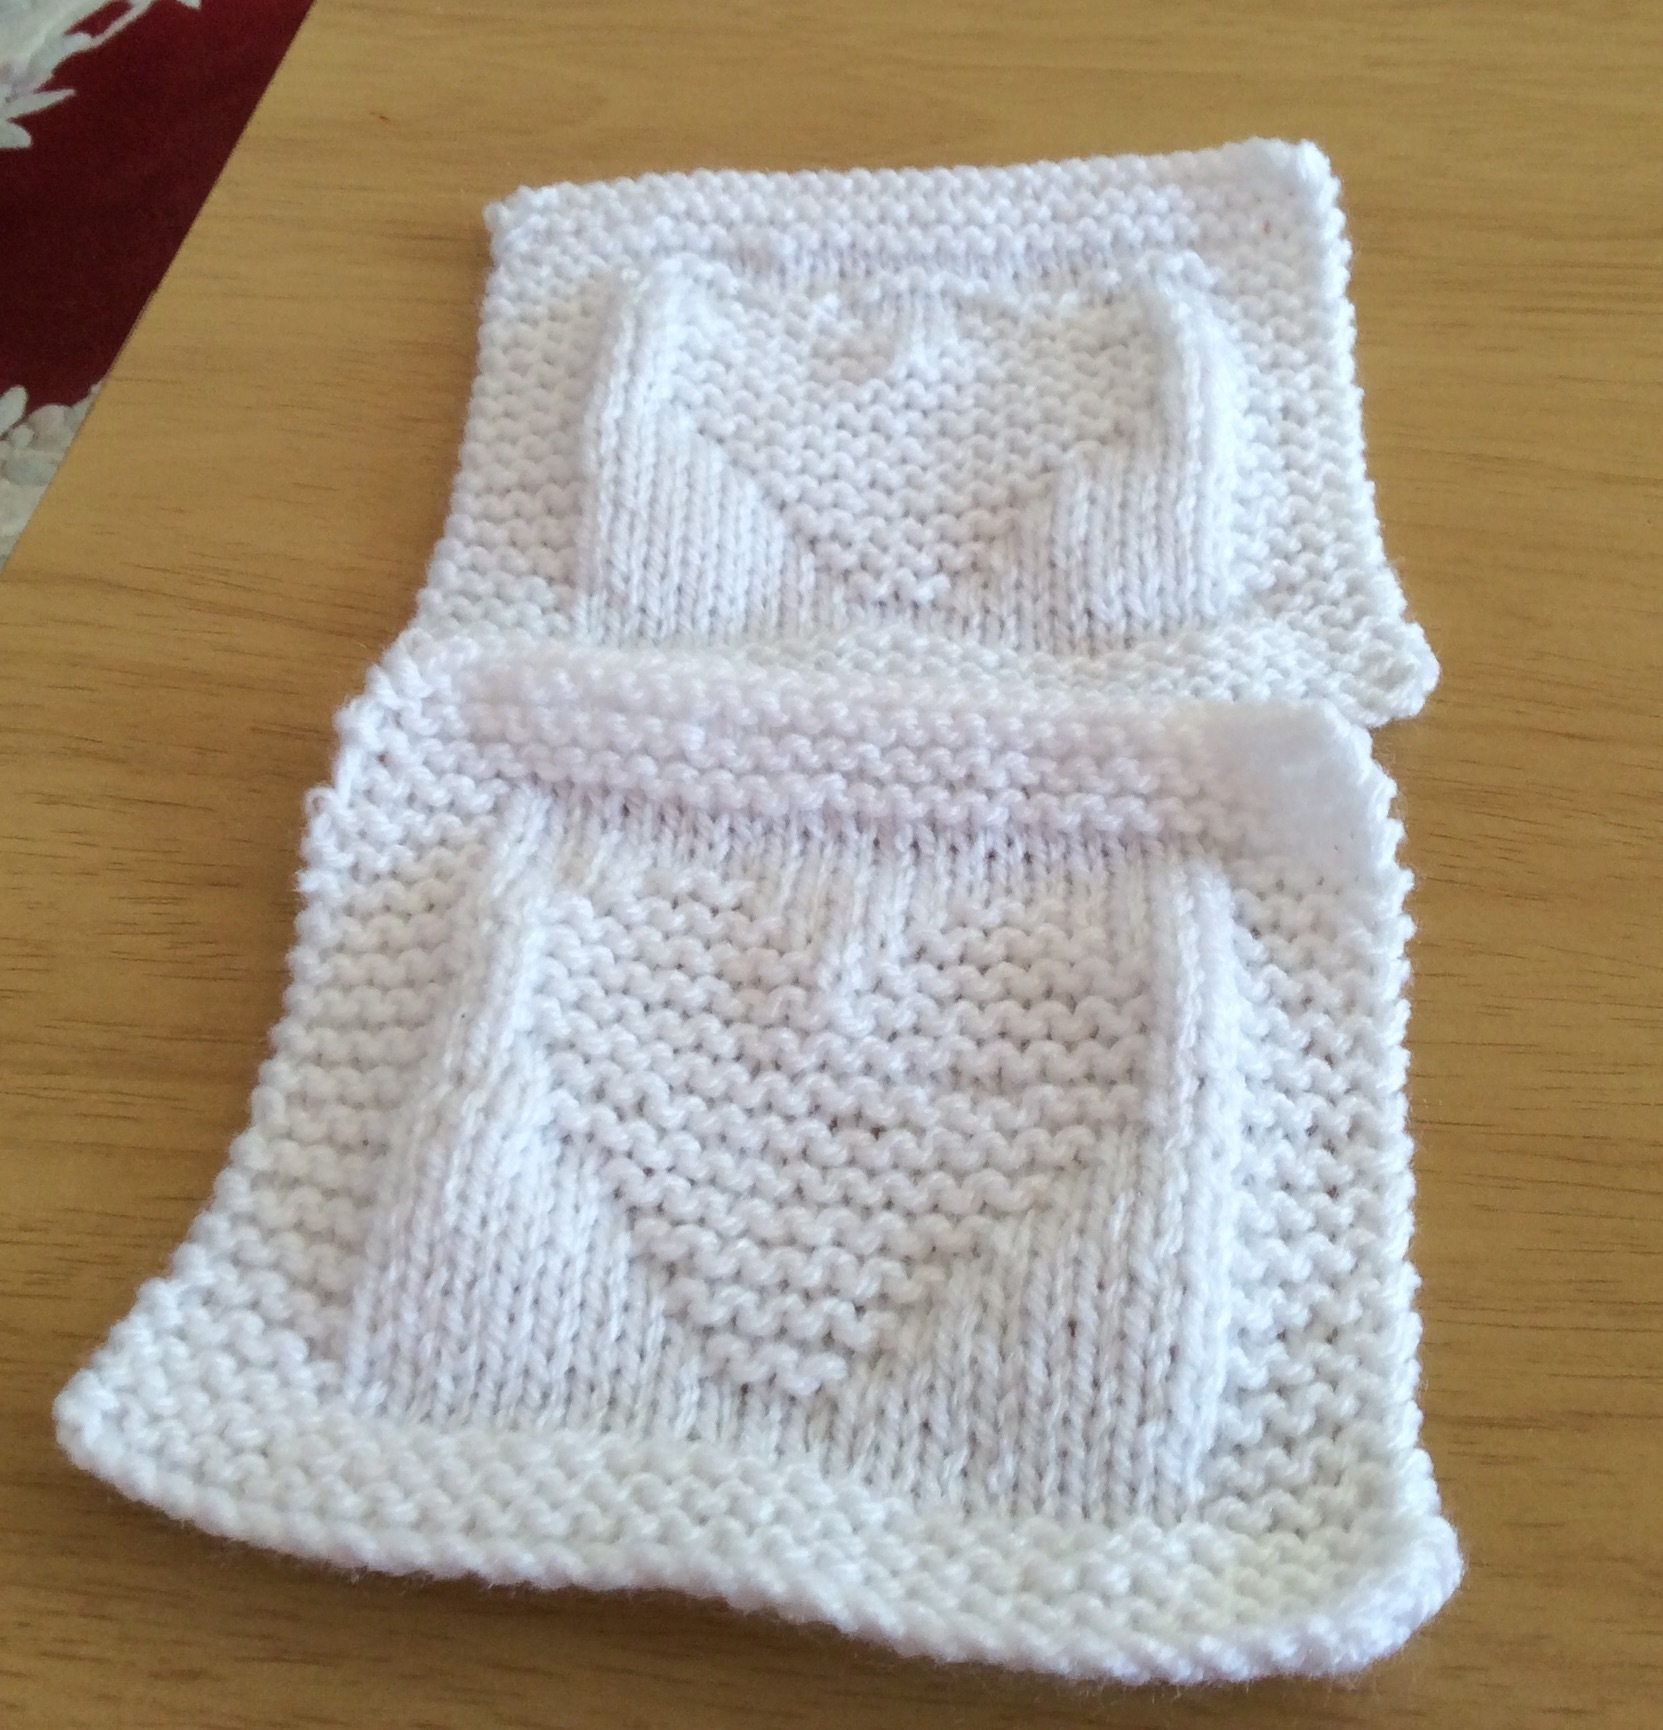 Bonding Squares For Neonatal And New Borns Knitting